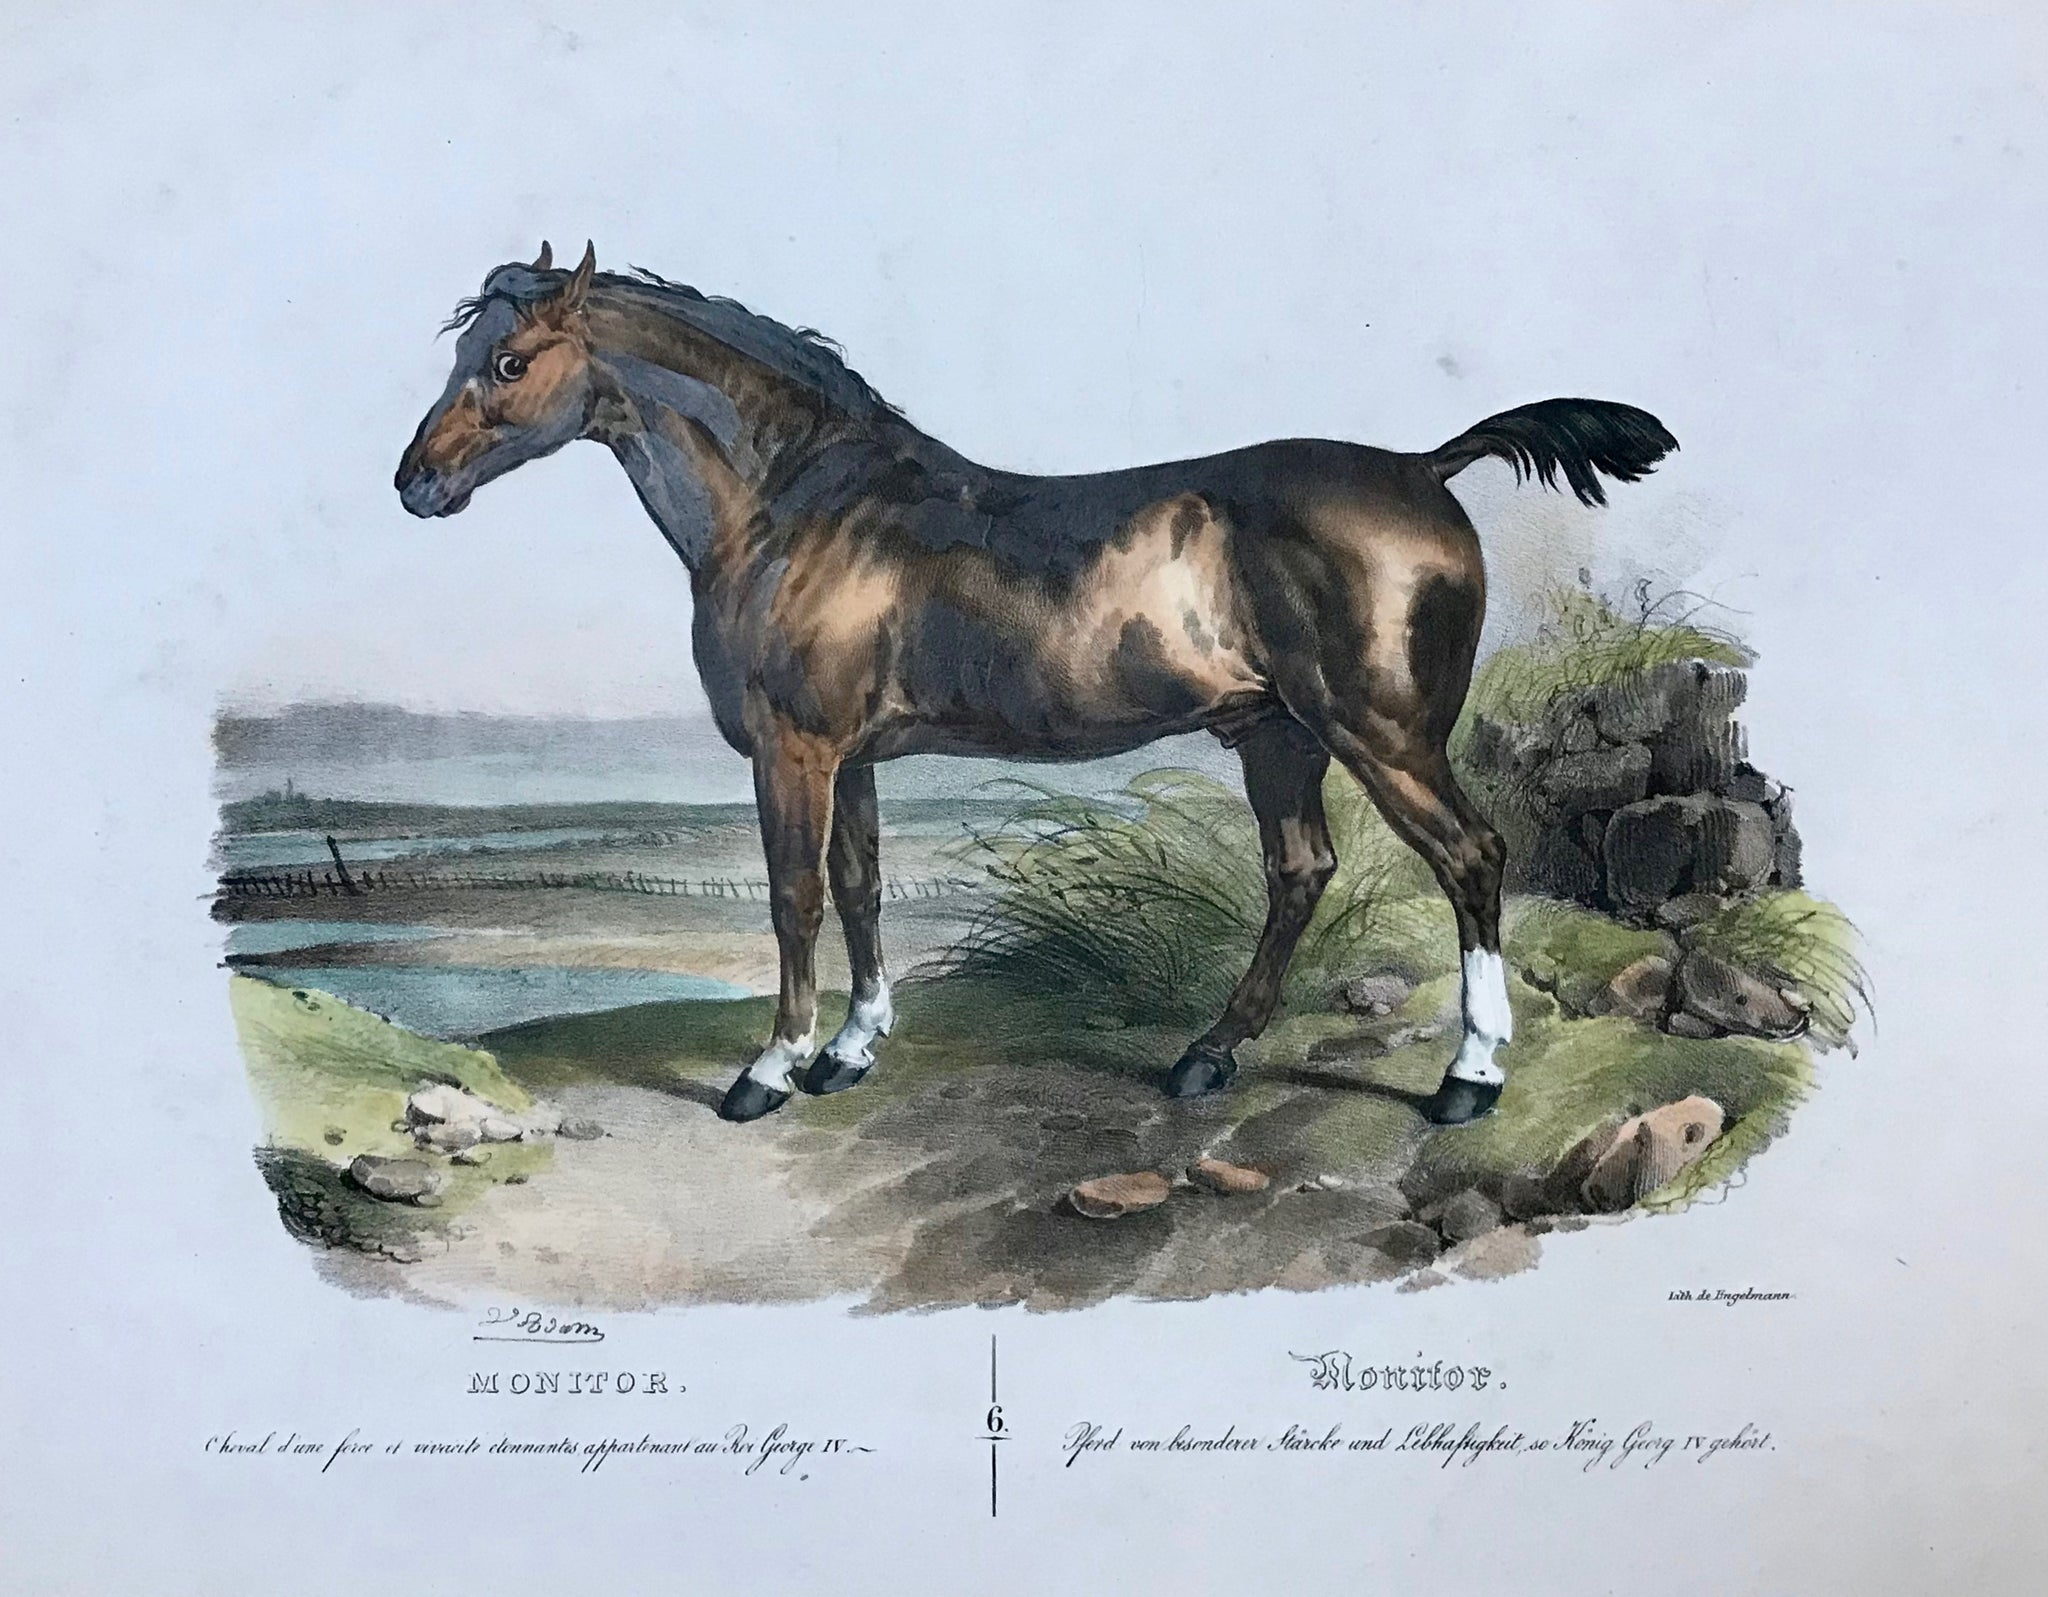 """Monitor - Pferd von besonderer Staerke und Lebhaftigkeit, so Koenig Georg IV gehoert""  Large folio print. Hand colored, heightened with gum arabic lithograph  by Gottfried Engelmann (1788-1839)  After the painting by Victor Adam (1801-1866)  Nr. 6 in a series of horses by Victor Adam  Two minor pleats above horse and to its side. Minor traces of age and use."